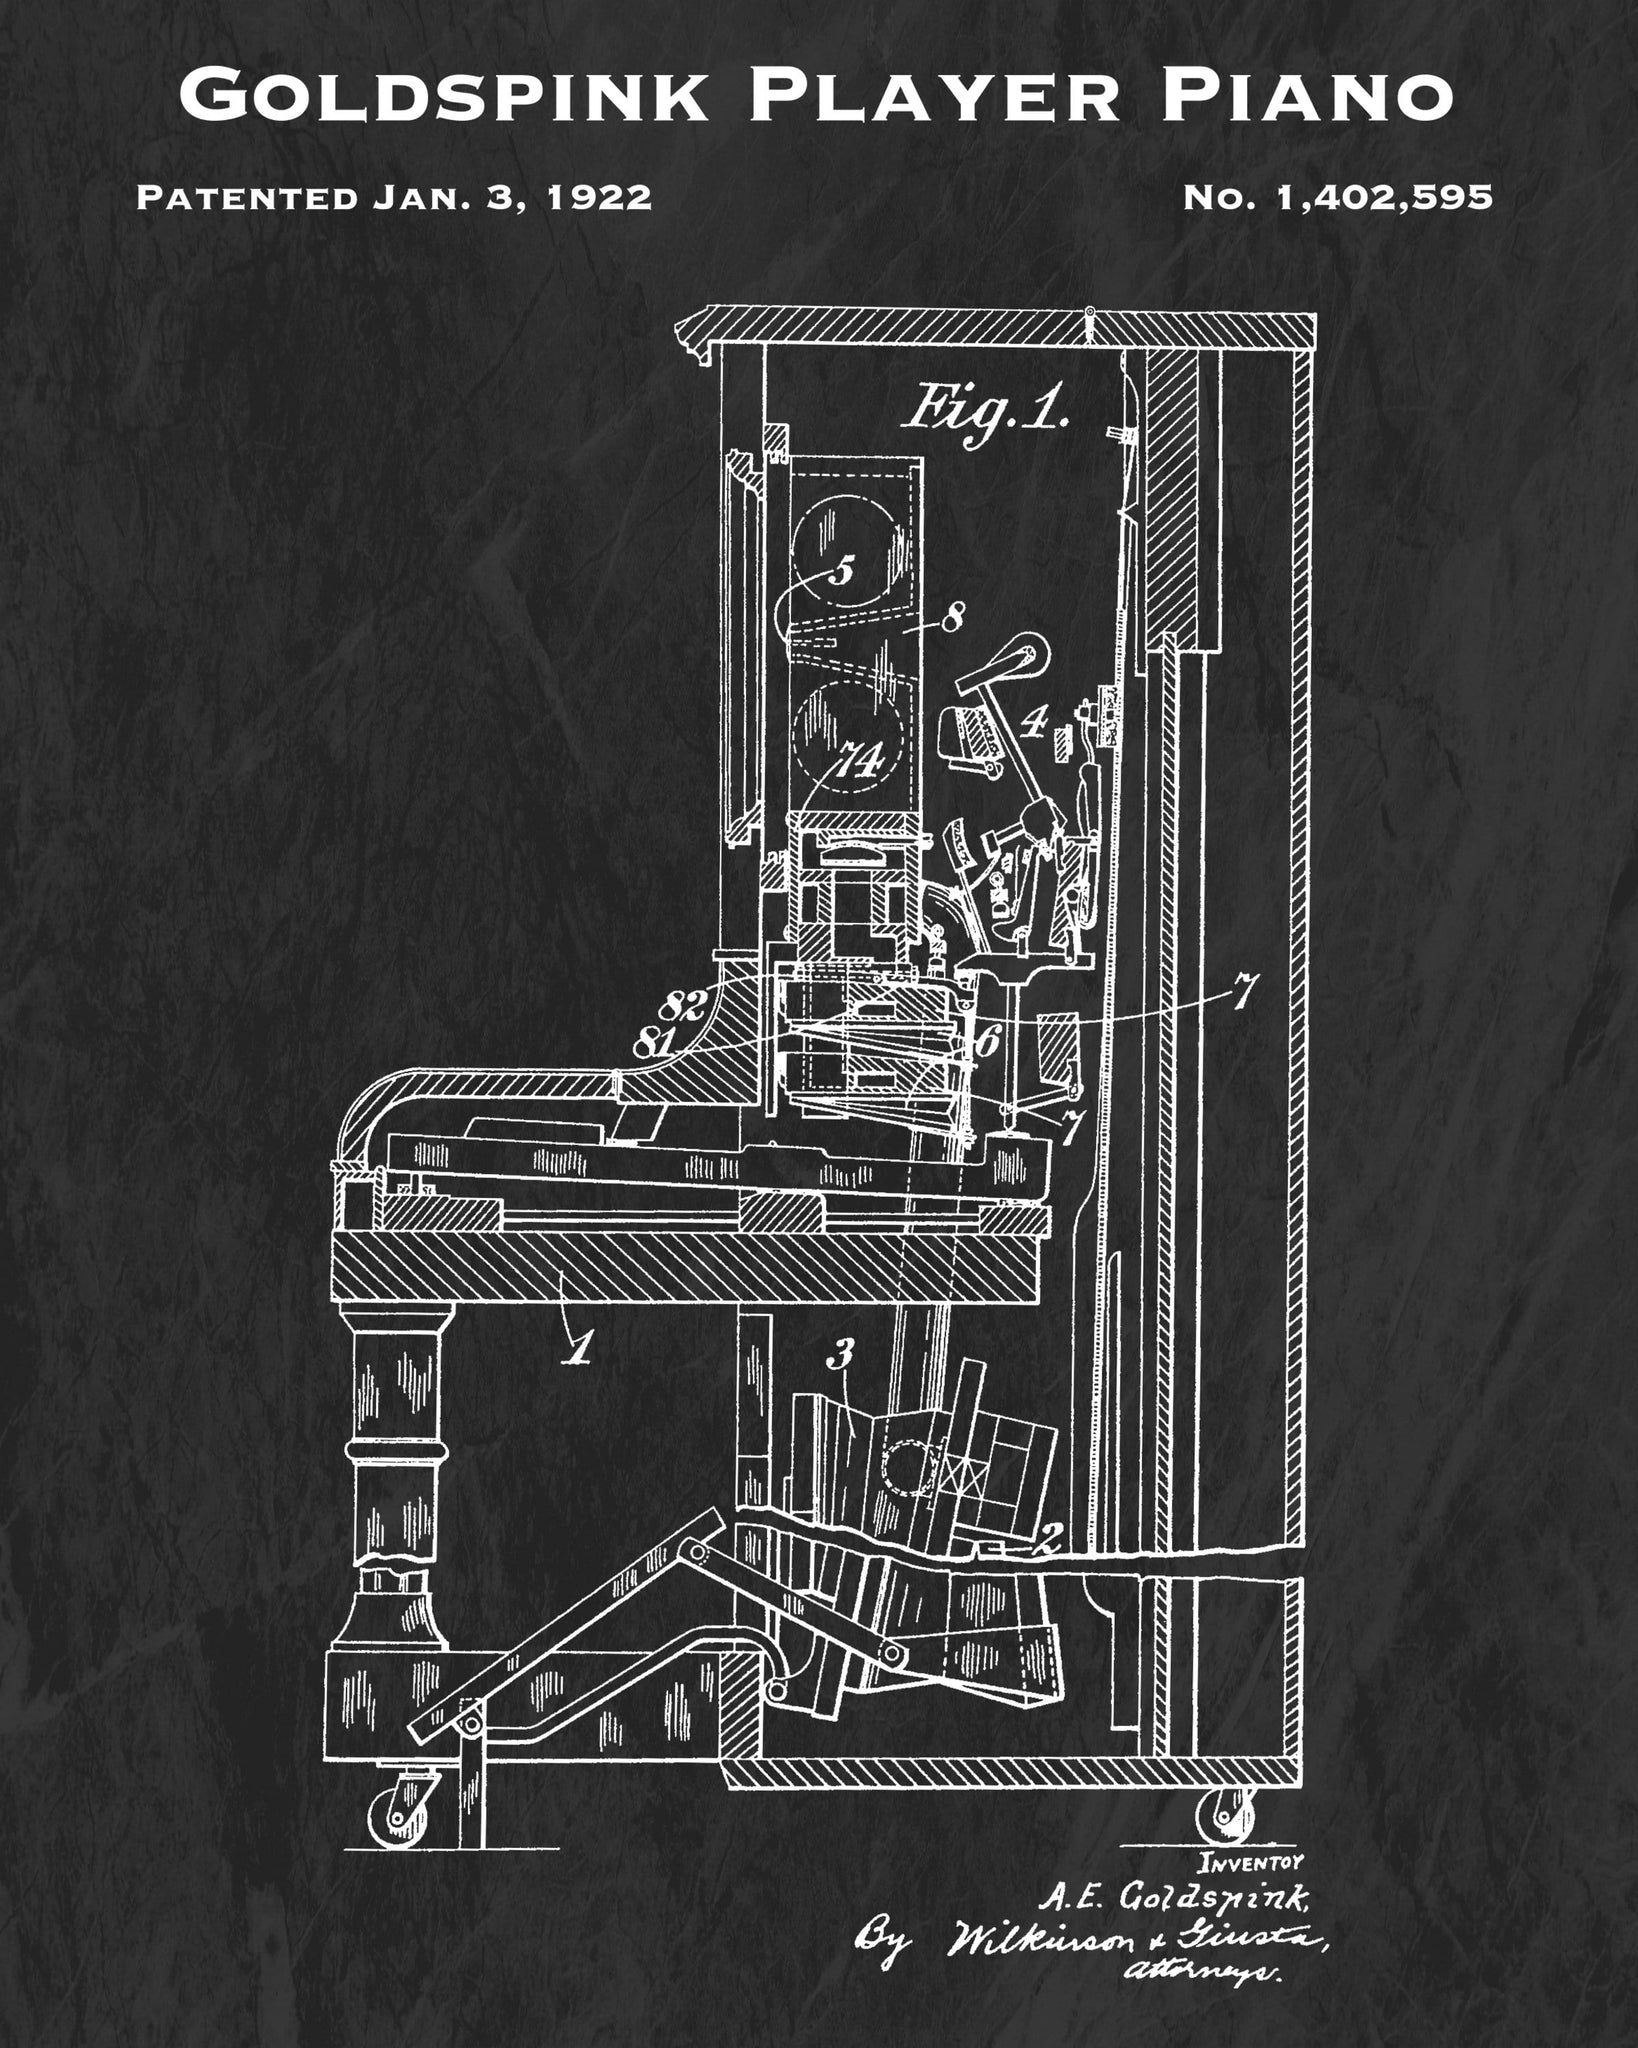 1922 Goldspink Player Piano Patent Art Print